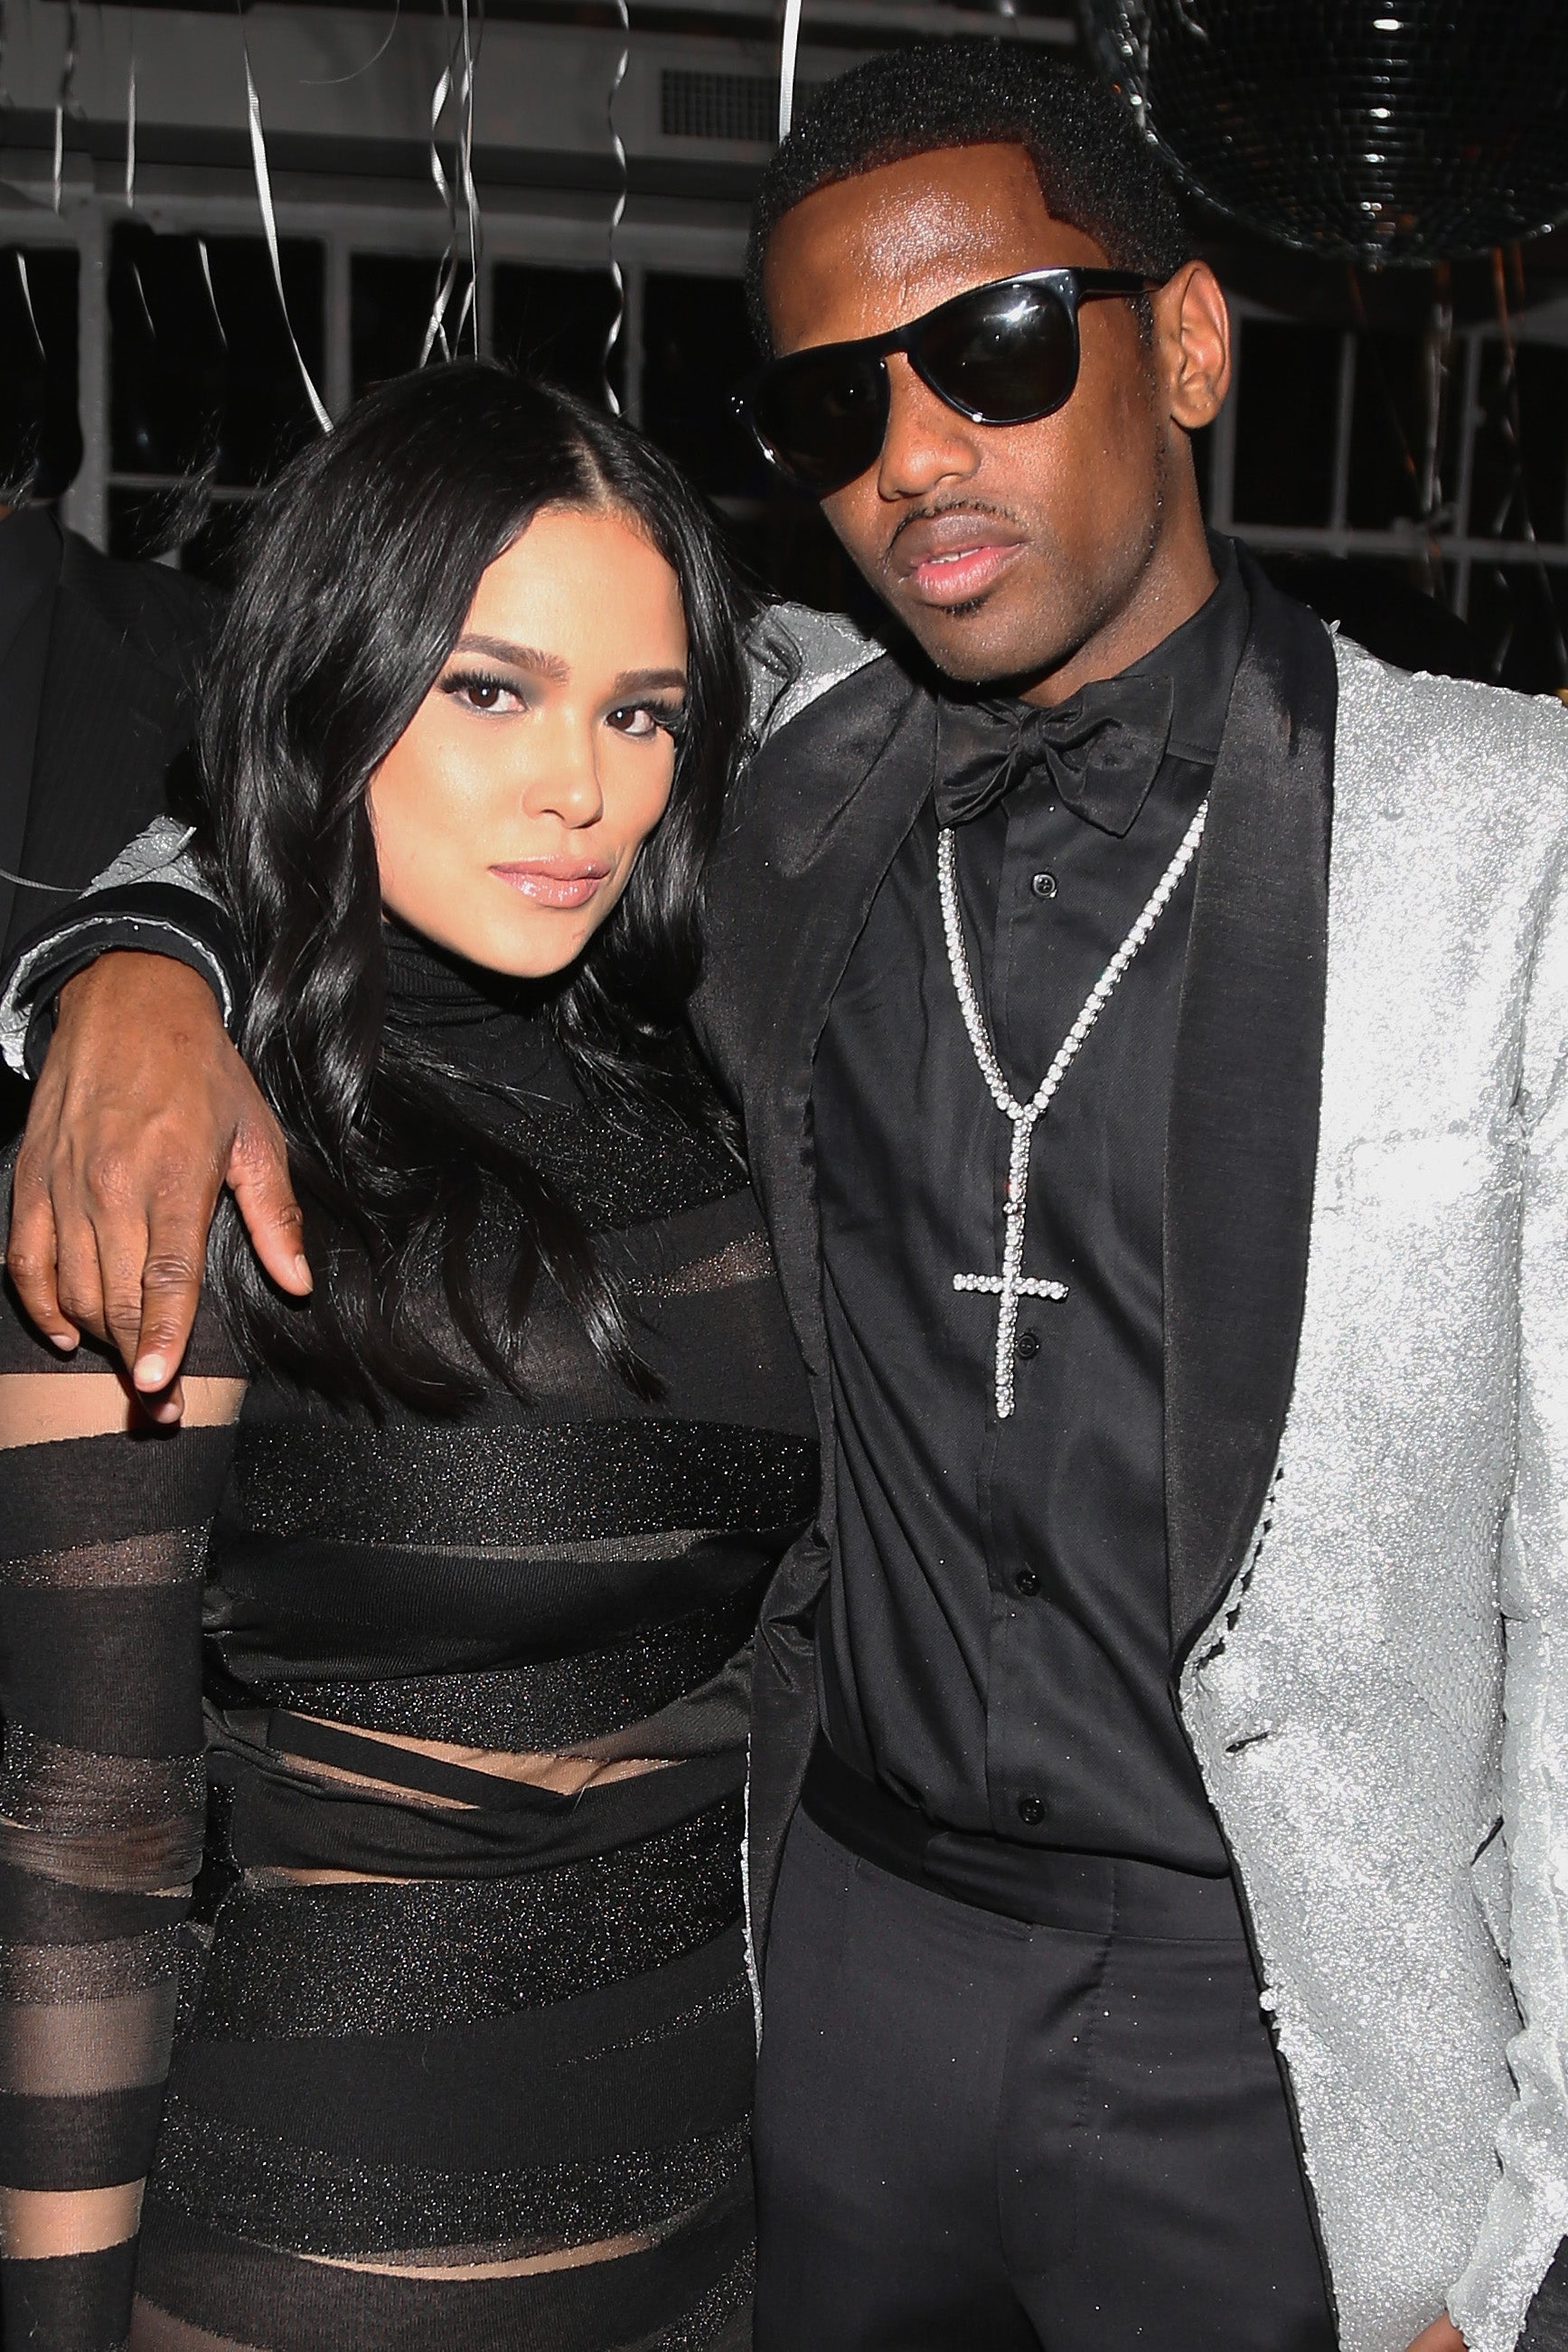 Fabolous Caught on Video Threatening Emily B. In Domestic Violence Incident